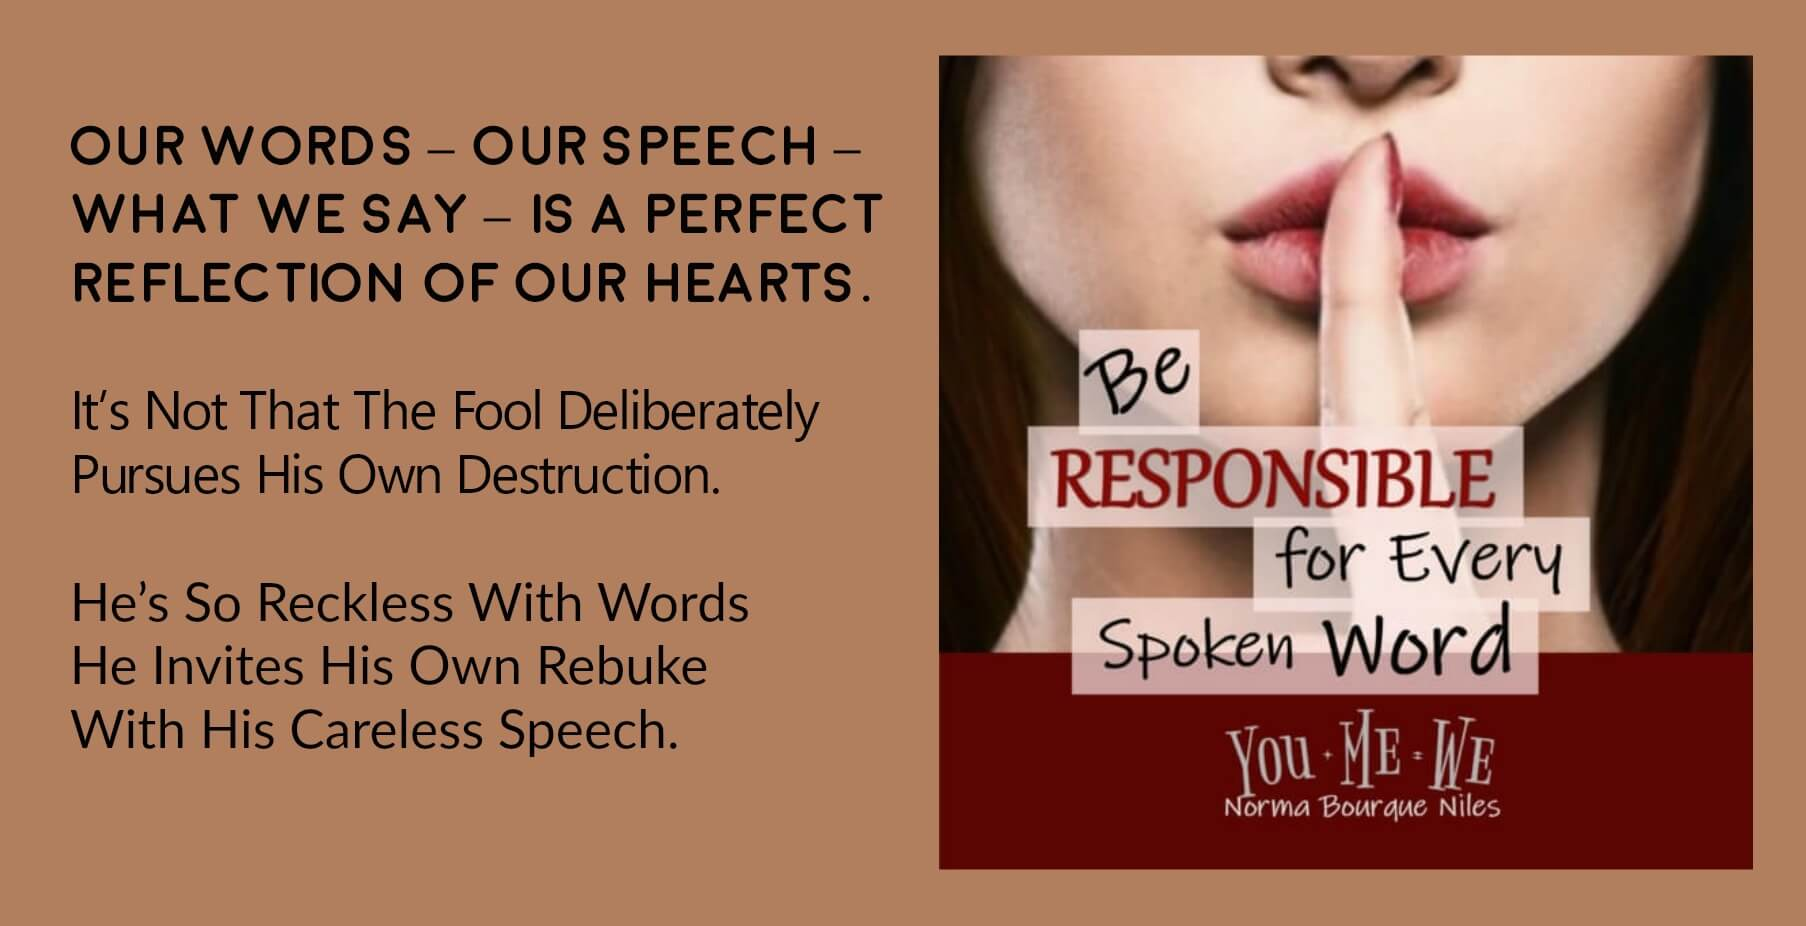 Be Responsible for Every Spoken Word (0)